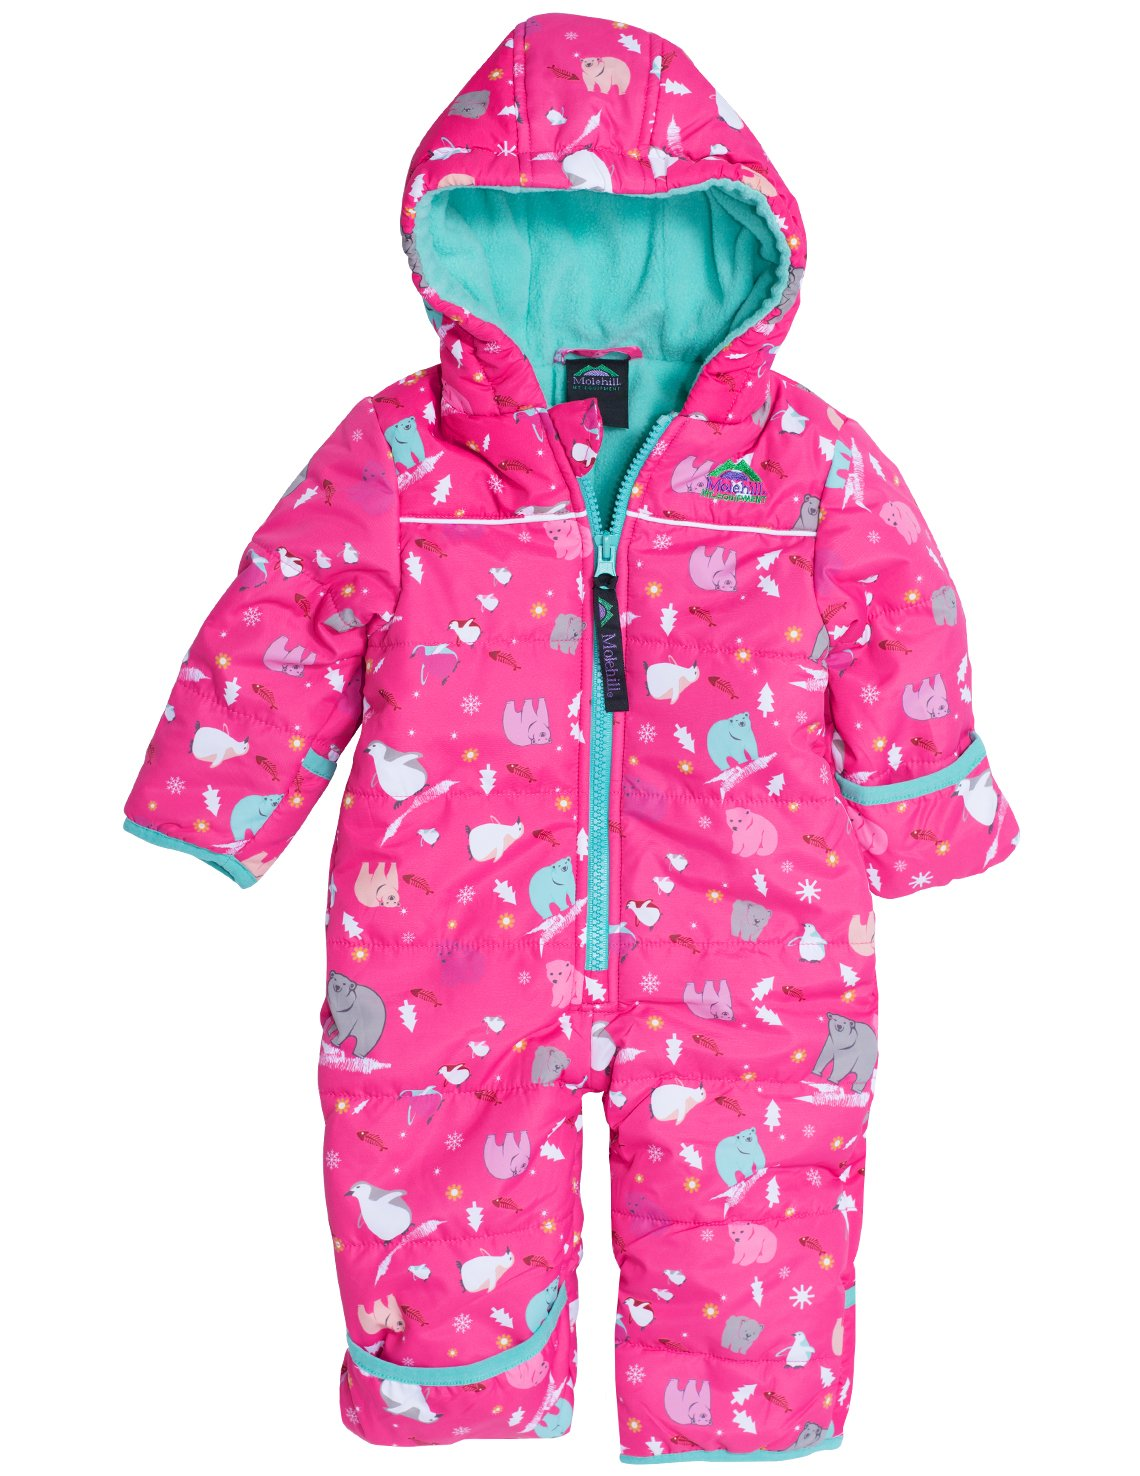 Molehill Bunting Suit, Frosty Pink, 9 Months by Molehill Mountain